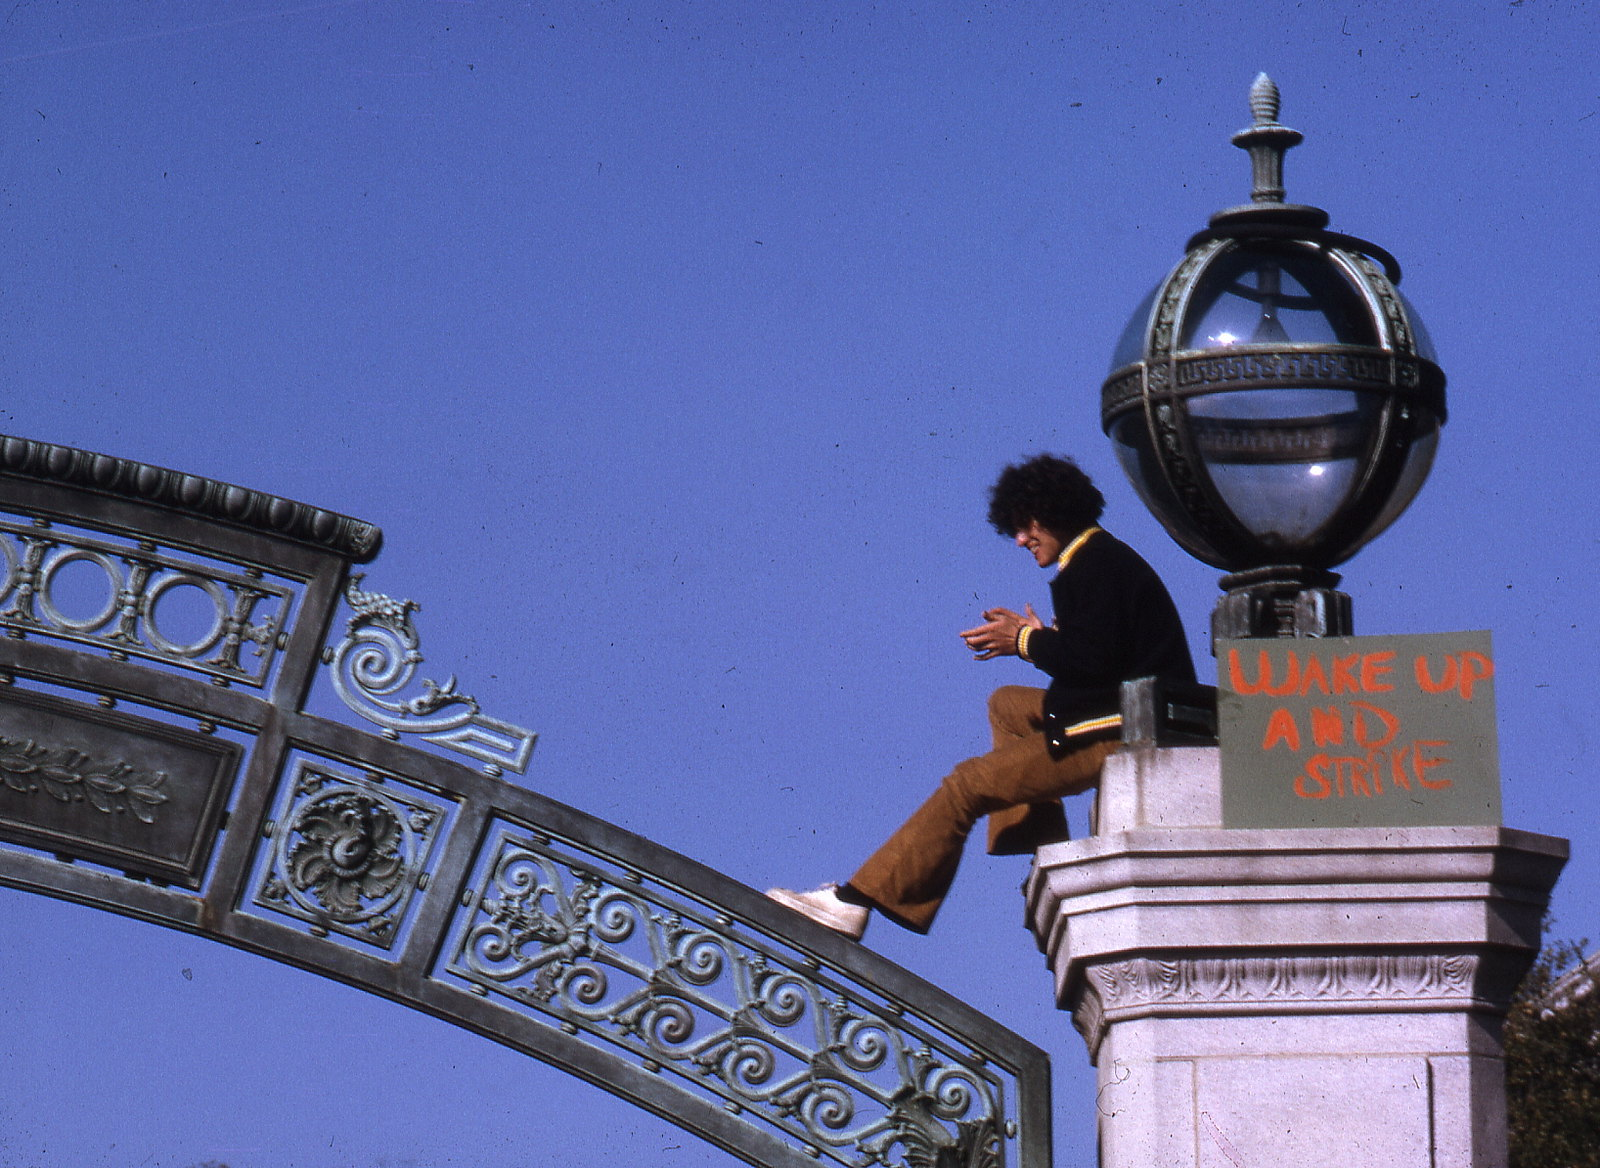 Sather Gate, February 1969 - from Snap Man's flickr, licensed under CC.